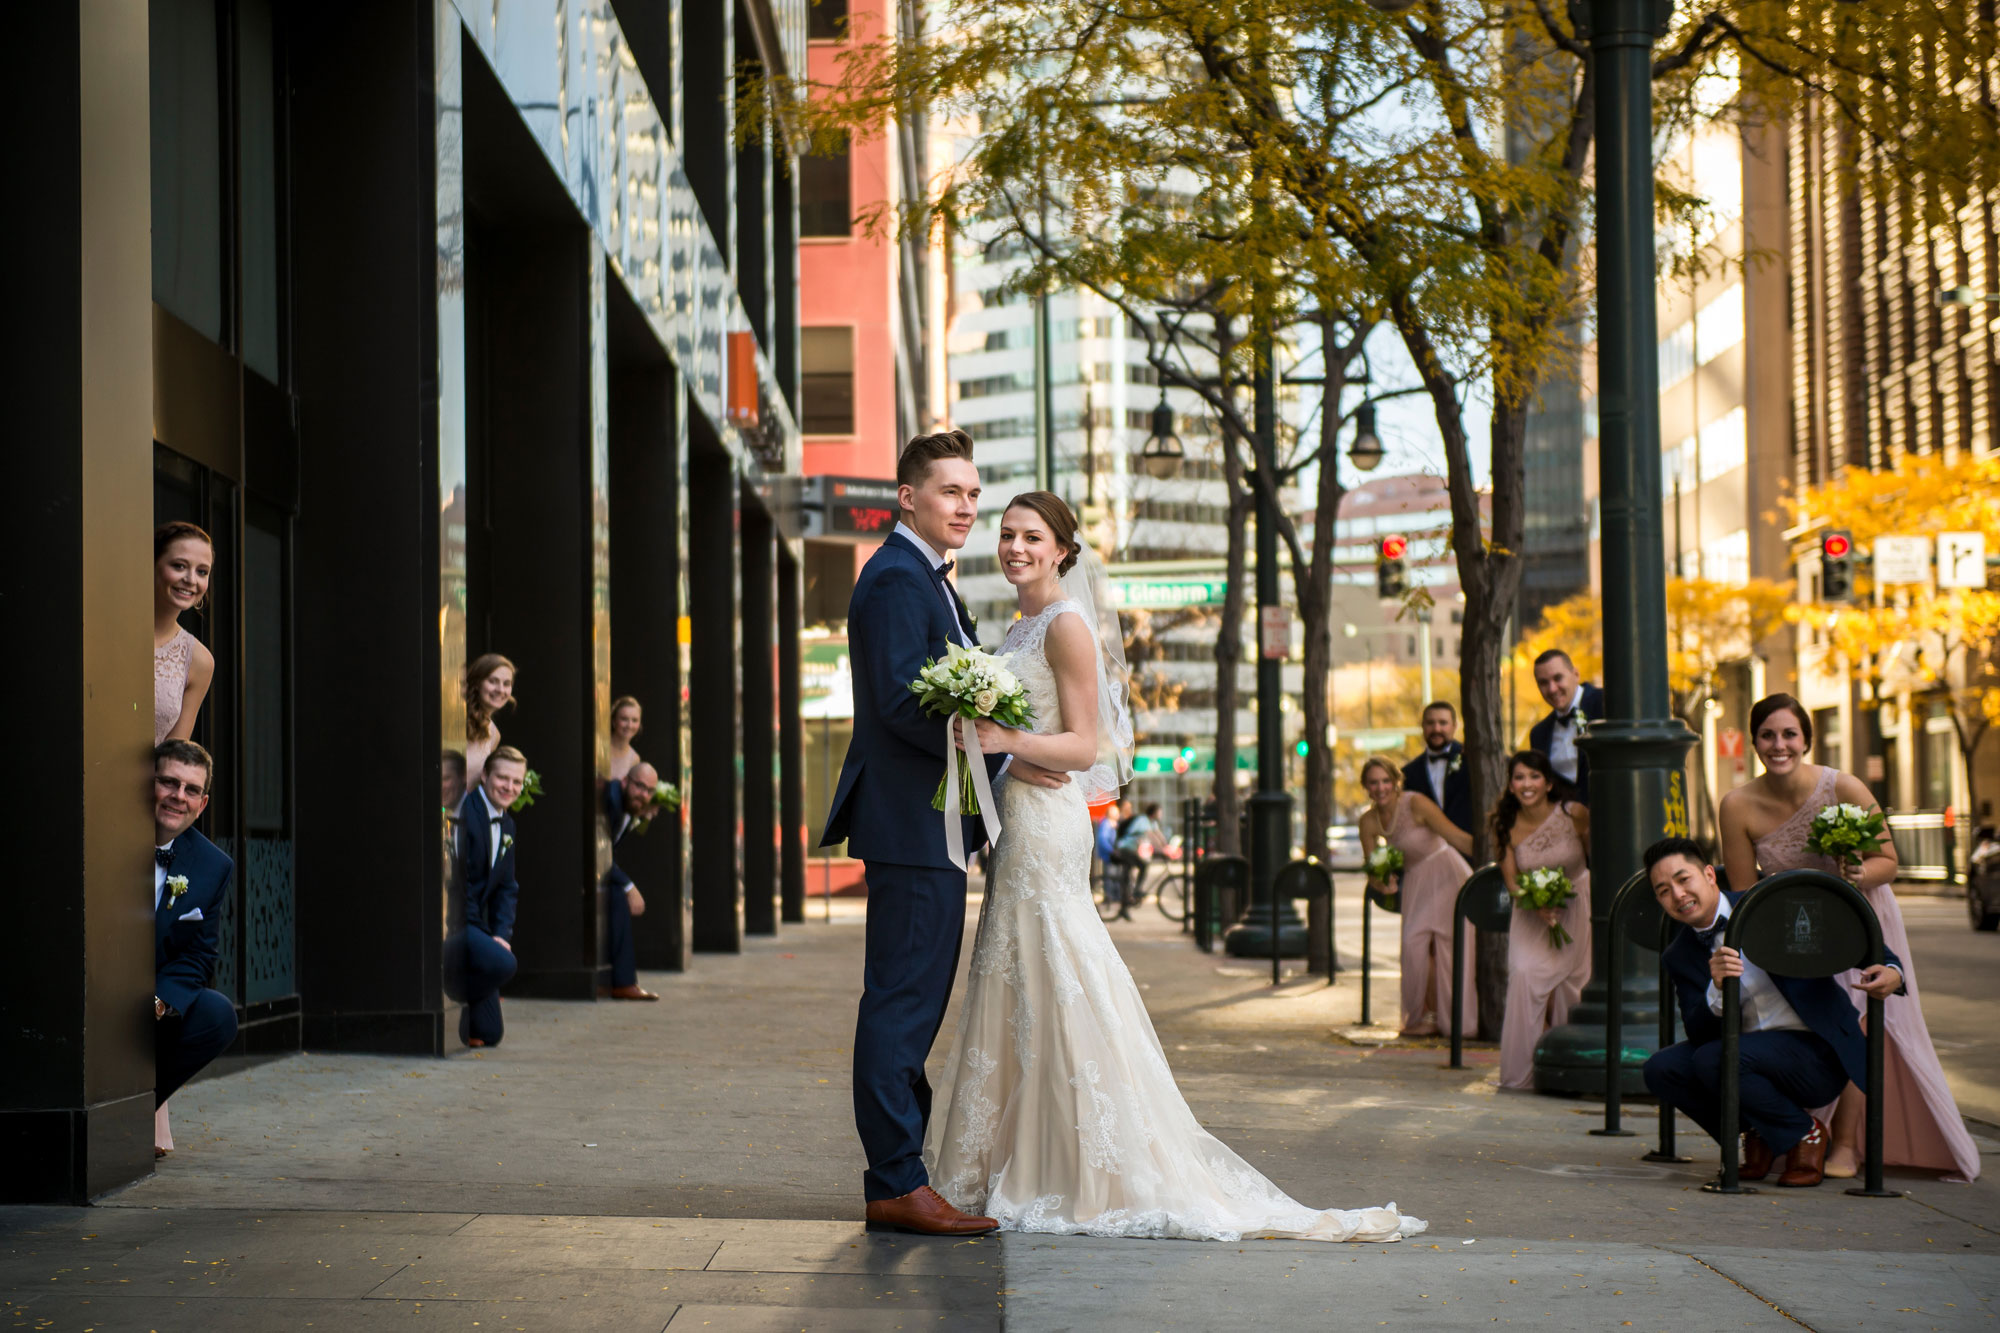 A Literary Themed Wedding in Downtown Denver, Colorado